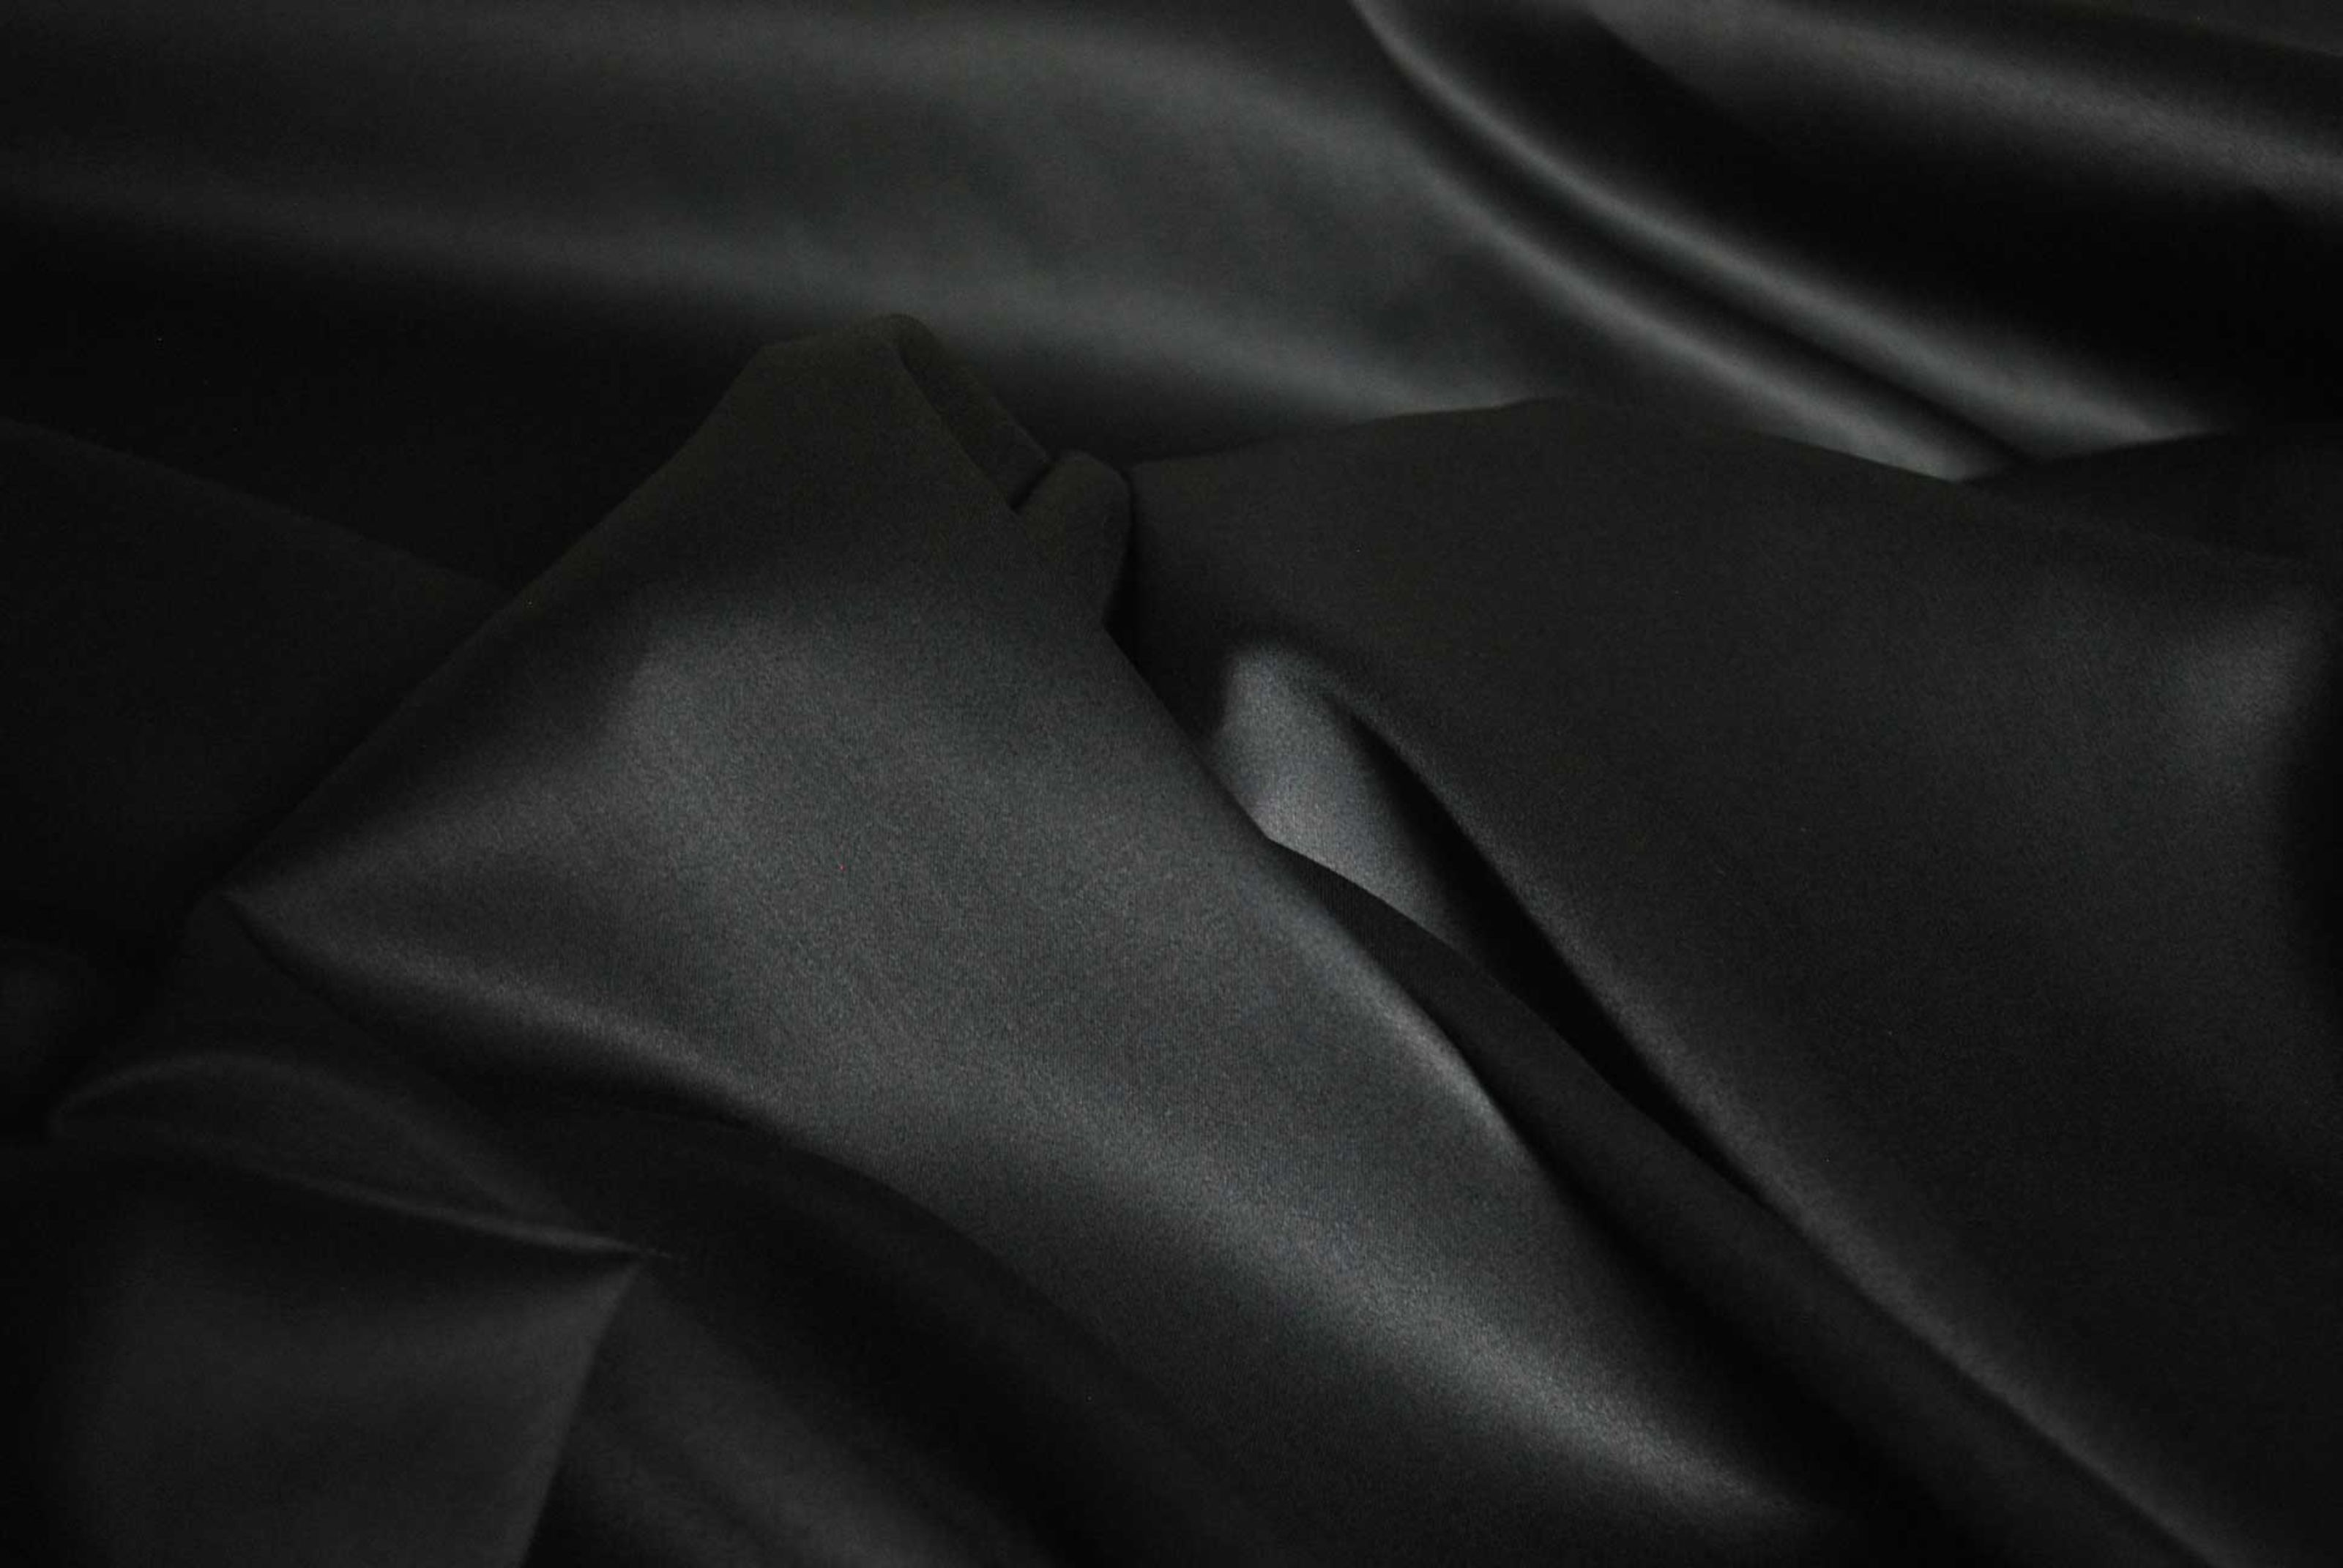 Black Stretch Dress Satin Fabric Carrington Bridal